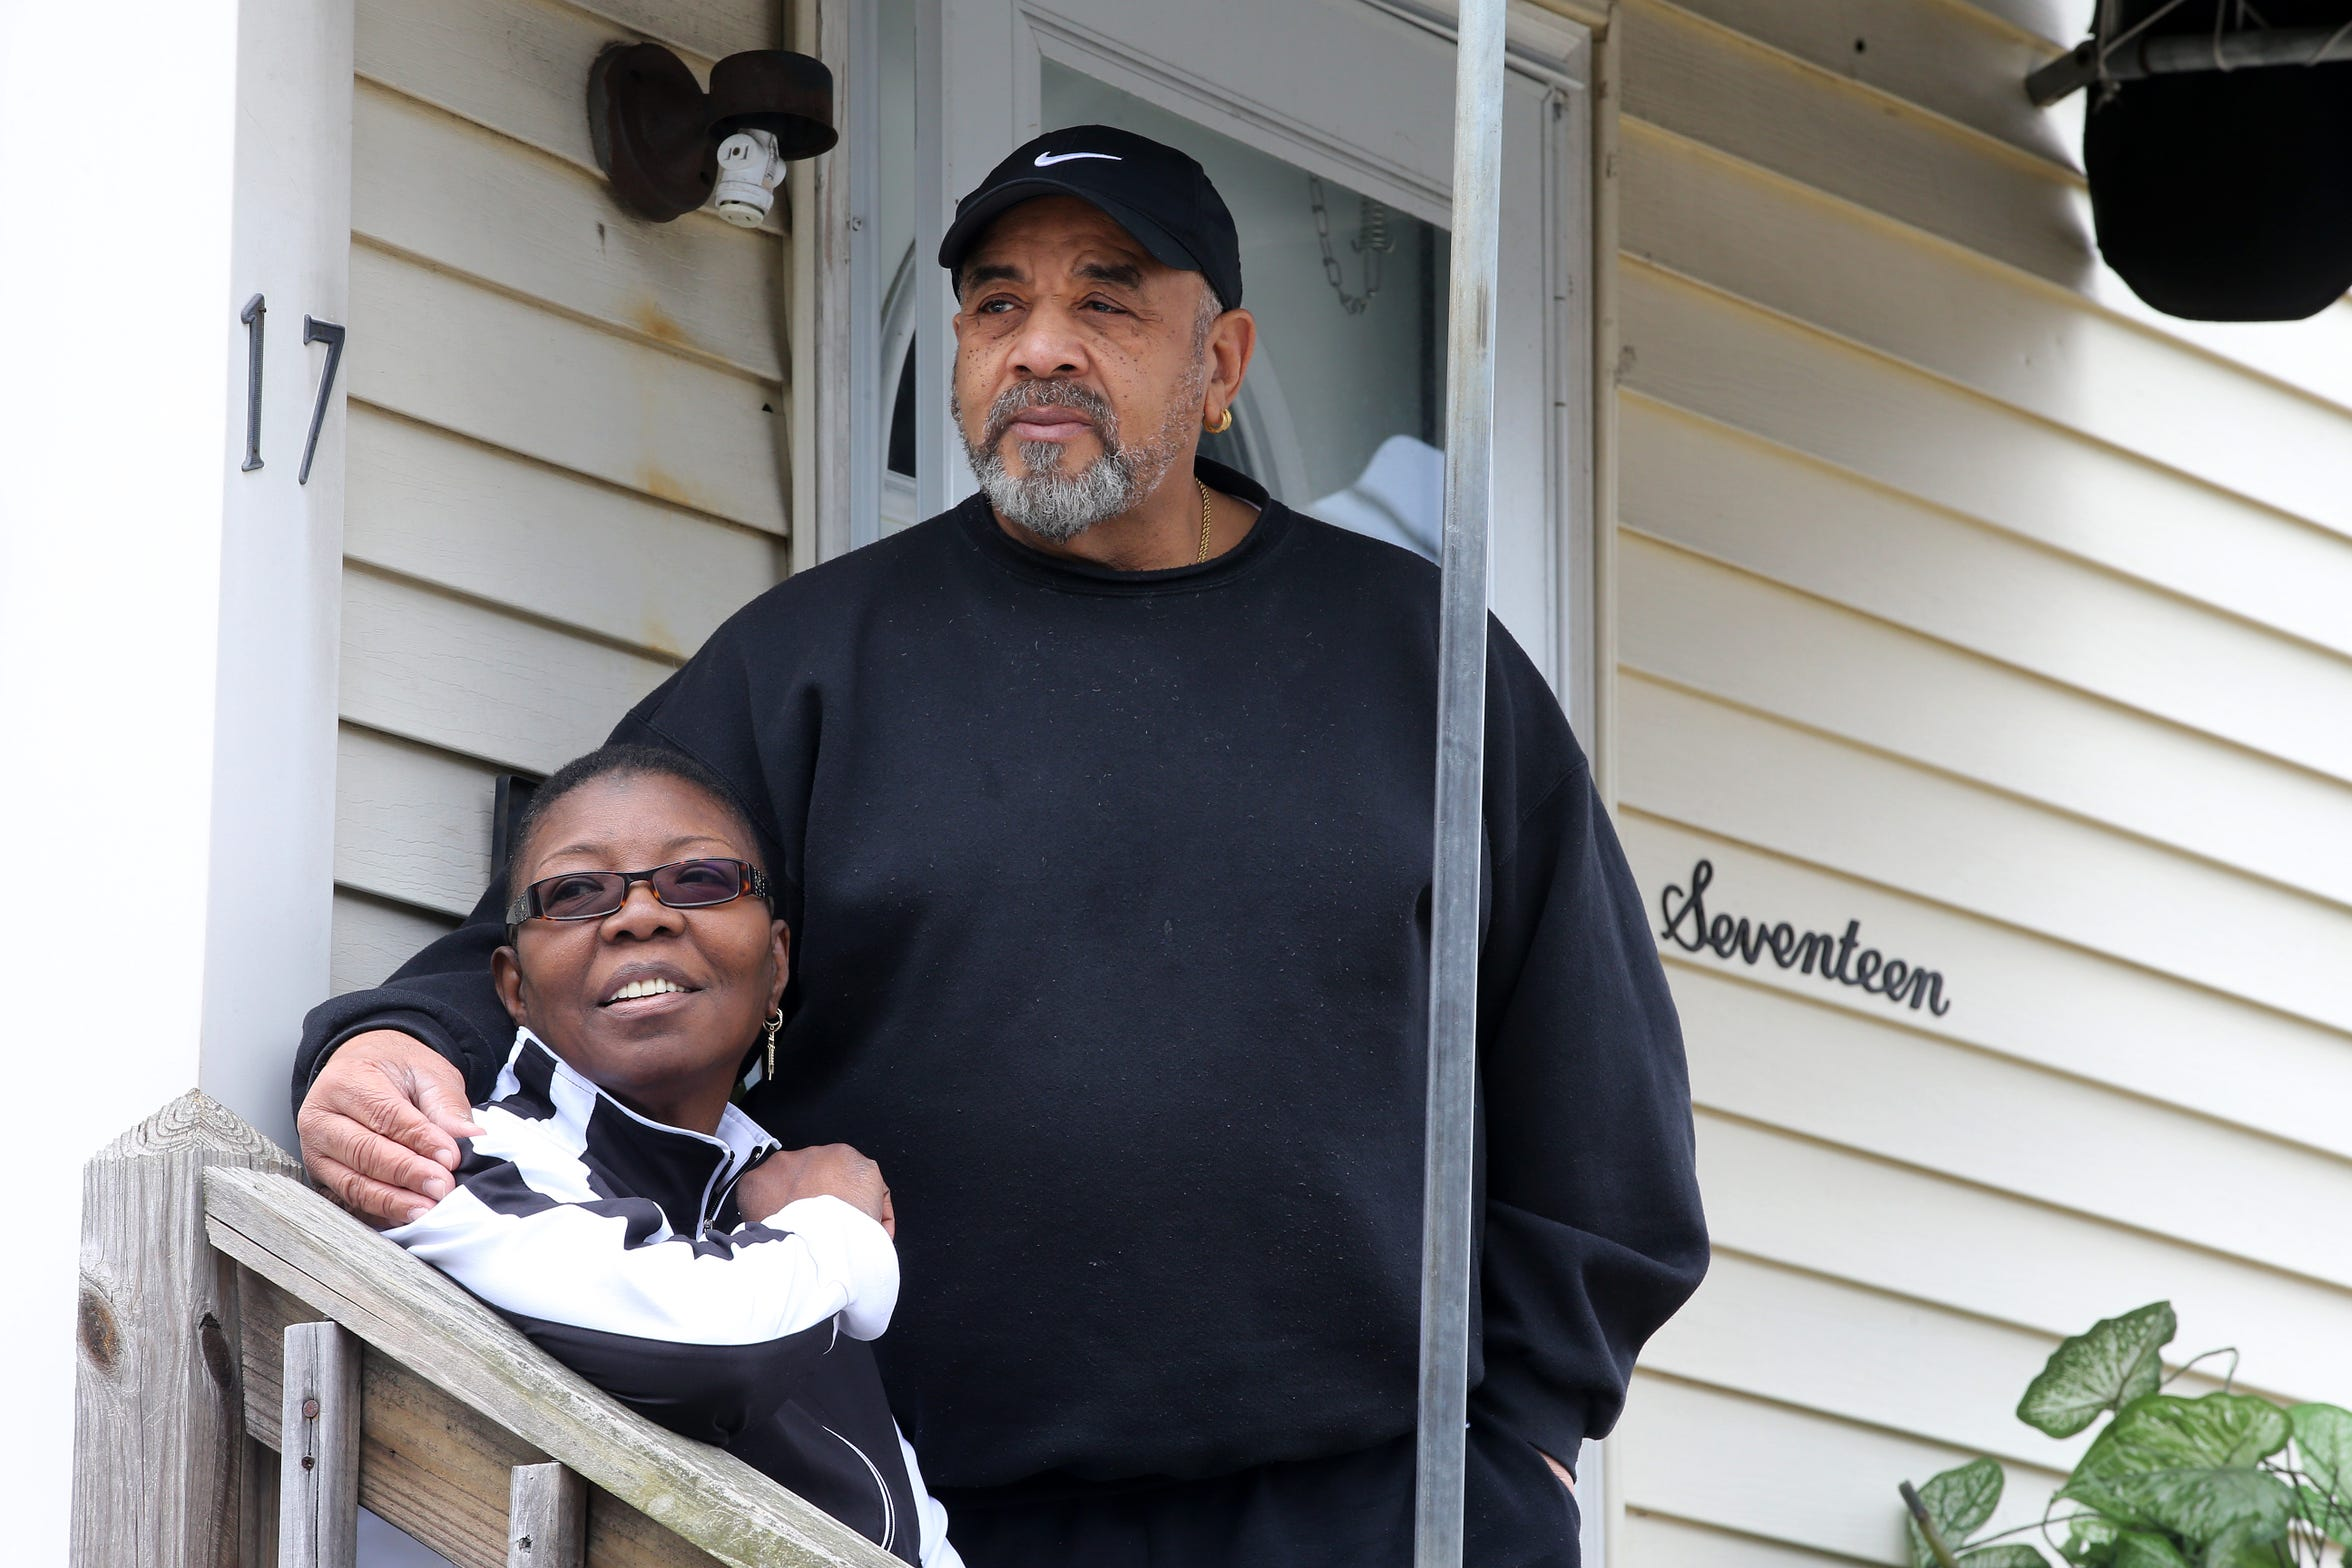 Dan and Emily Harris, community leaders and lifetime residents of Asbury Park's West Side, pose outside of their home in Asbury Park, NJ Friday, February 15, 2019.